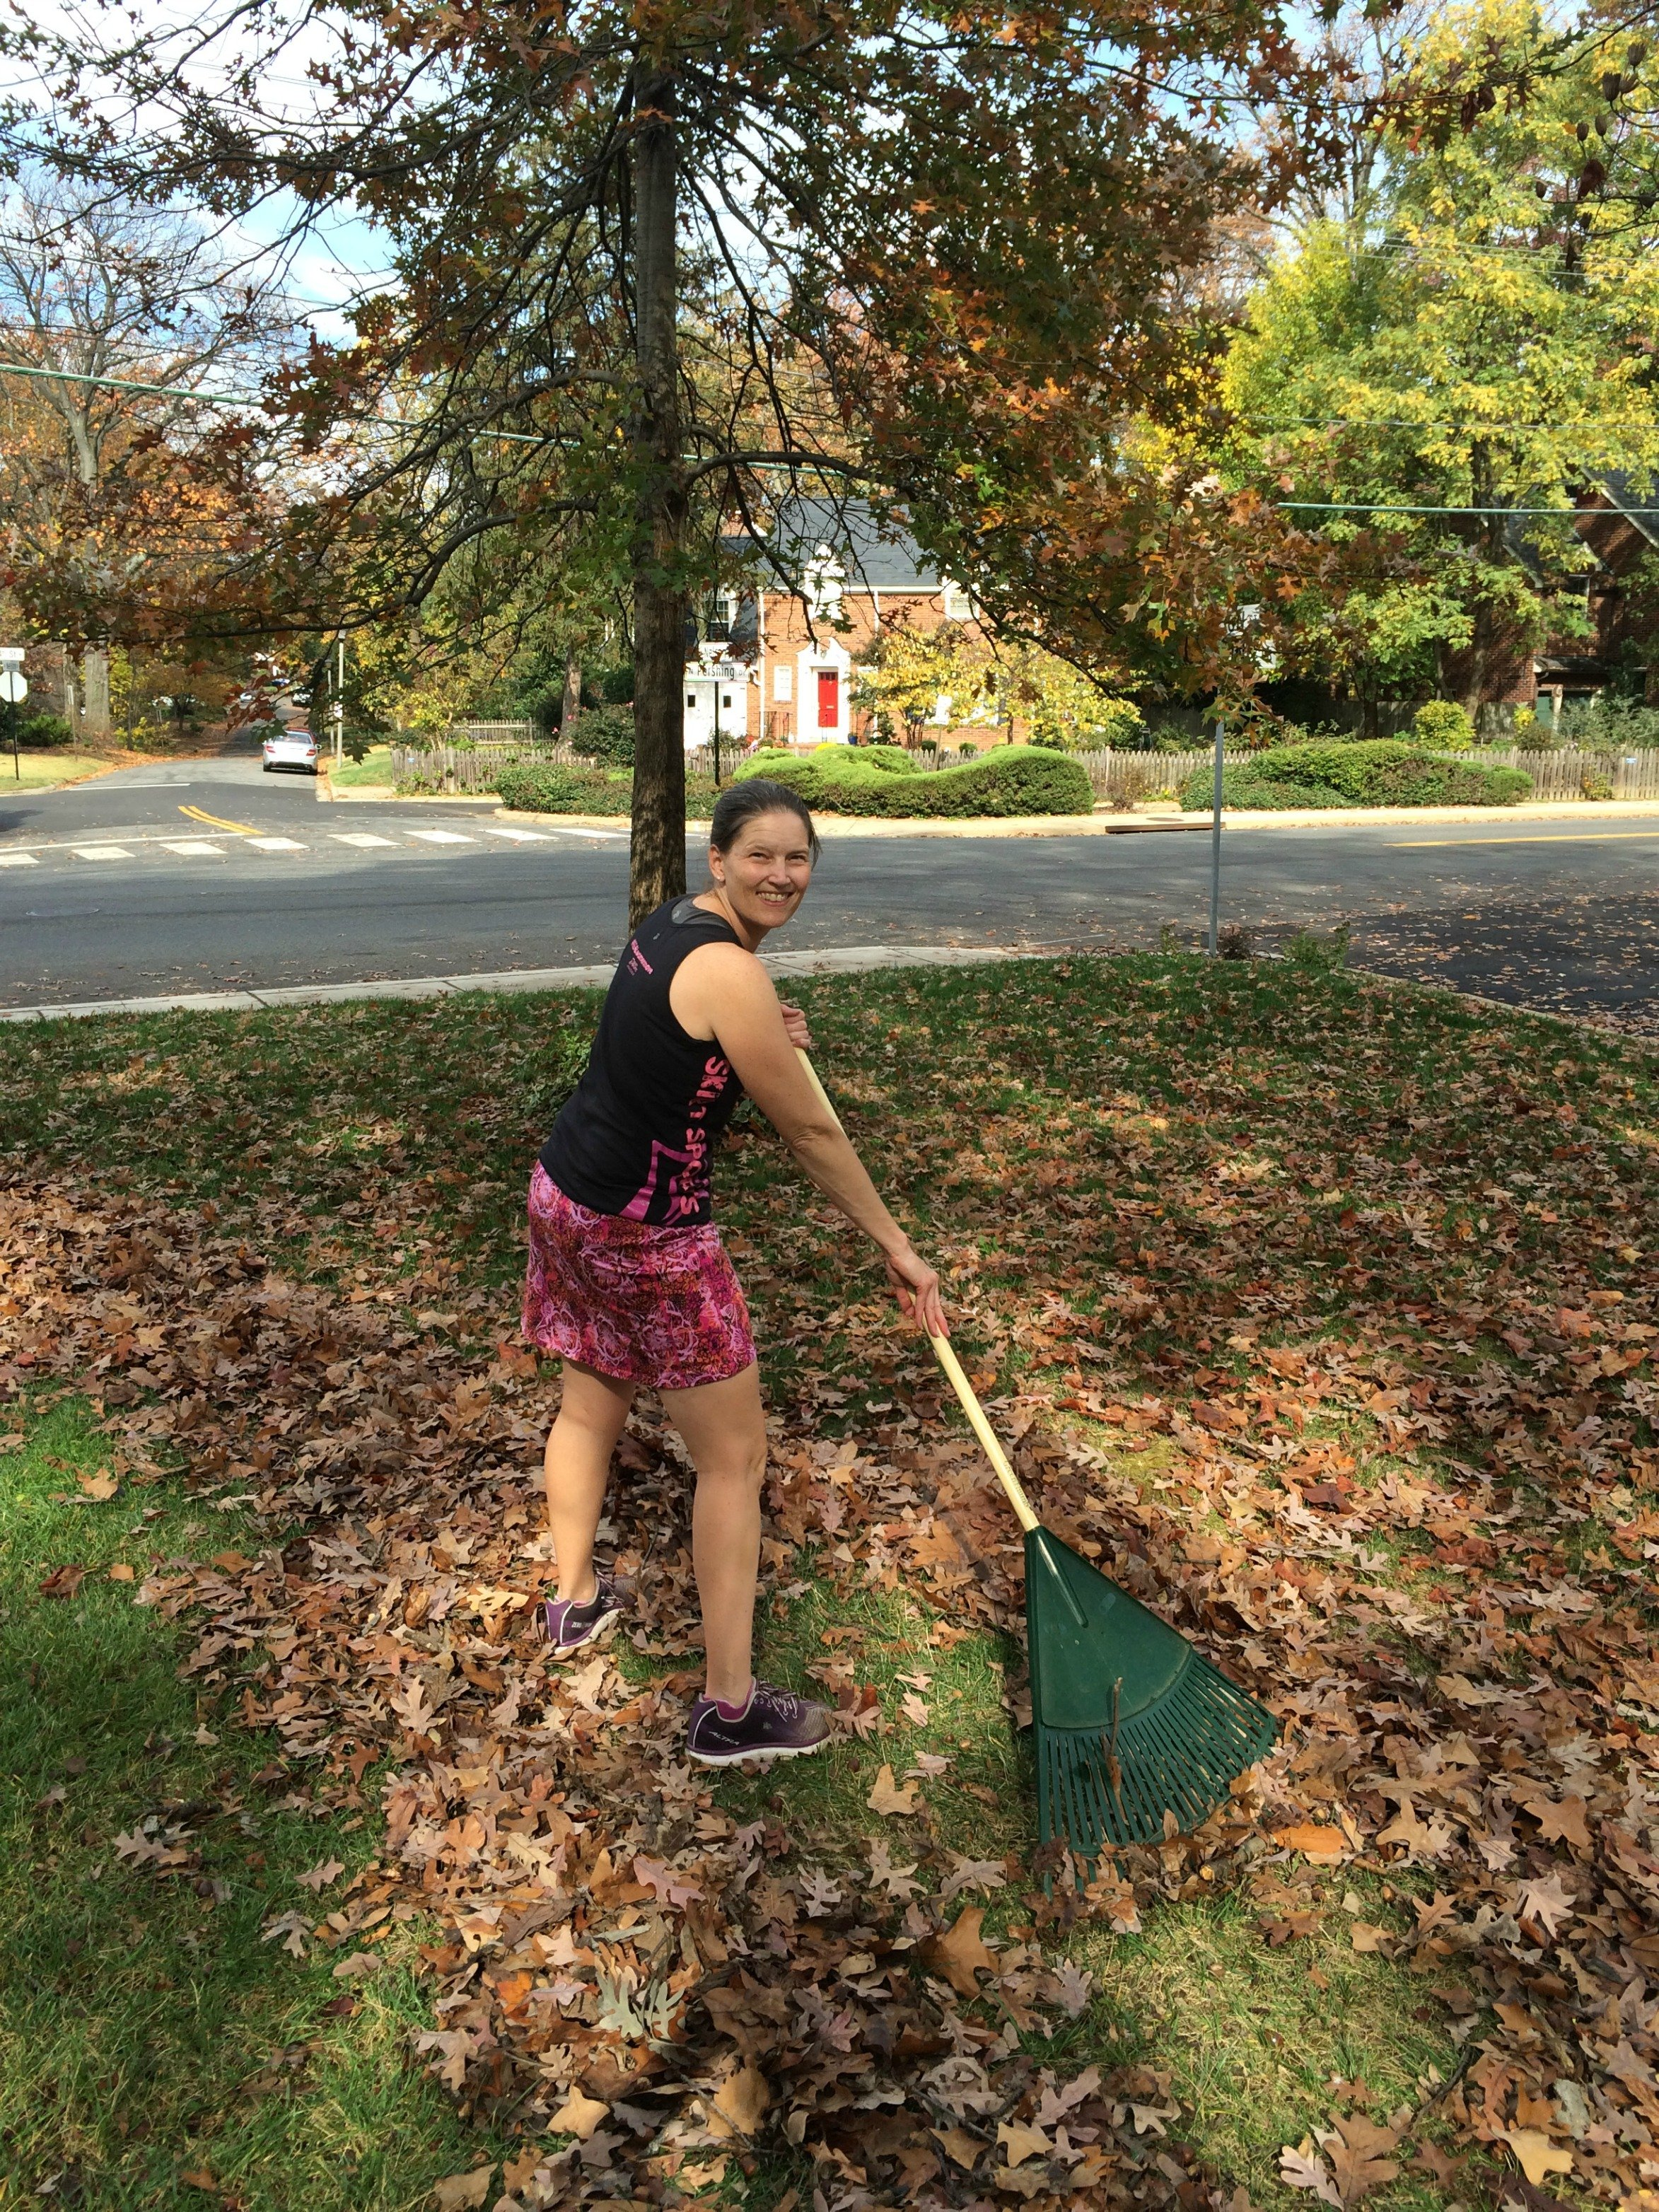 Skirt Sports leaf raking